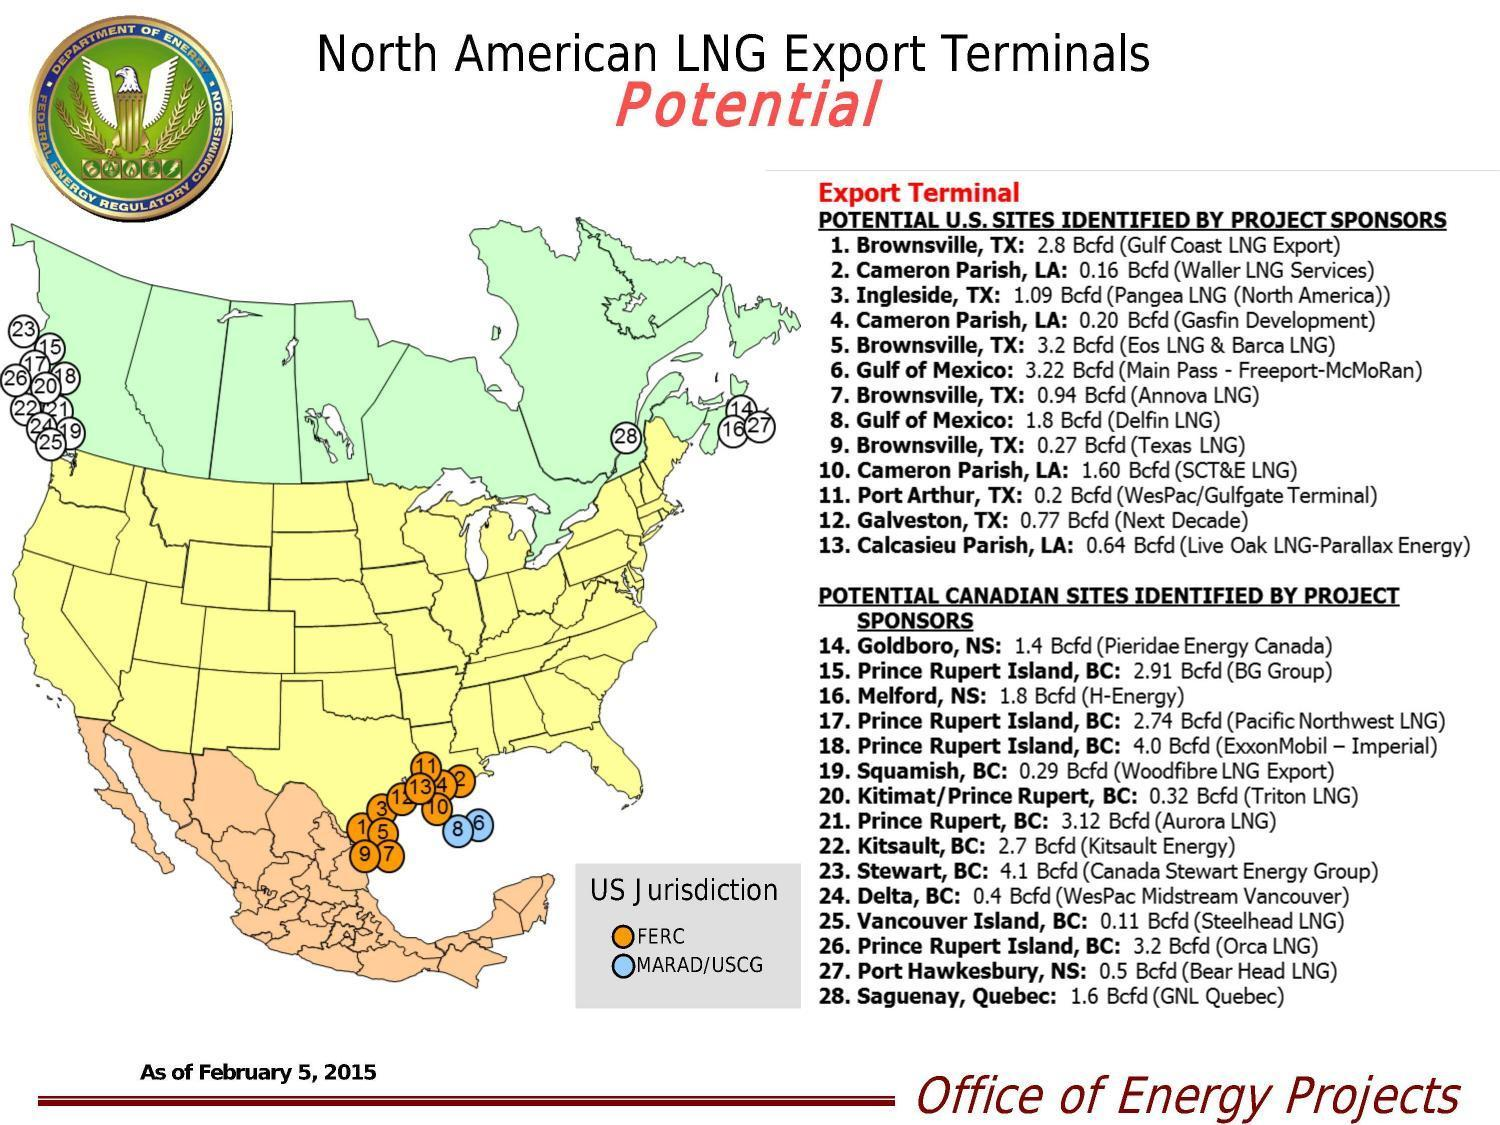 1500x1125 FERC Potential North American LNG Export Terminals, in LNG, by John S. Quarterman, for SpectraBusters.org, 22 February 2015